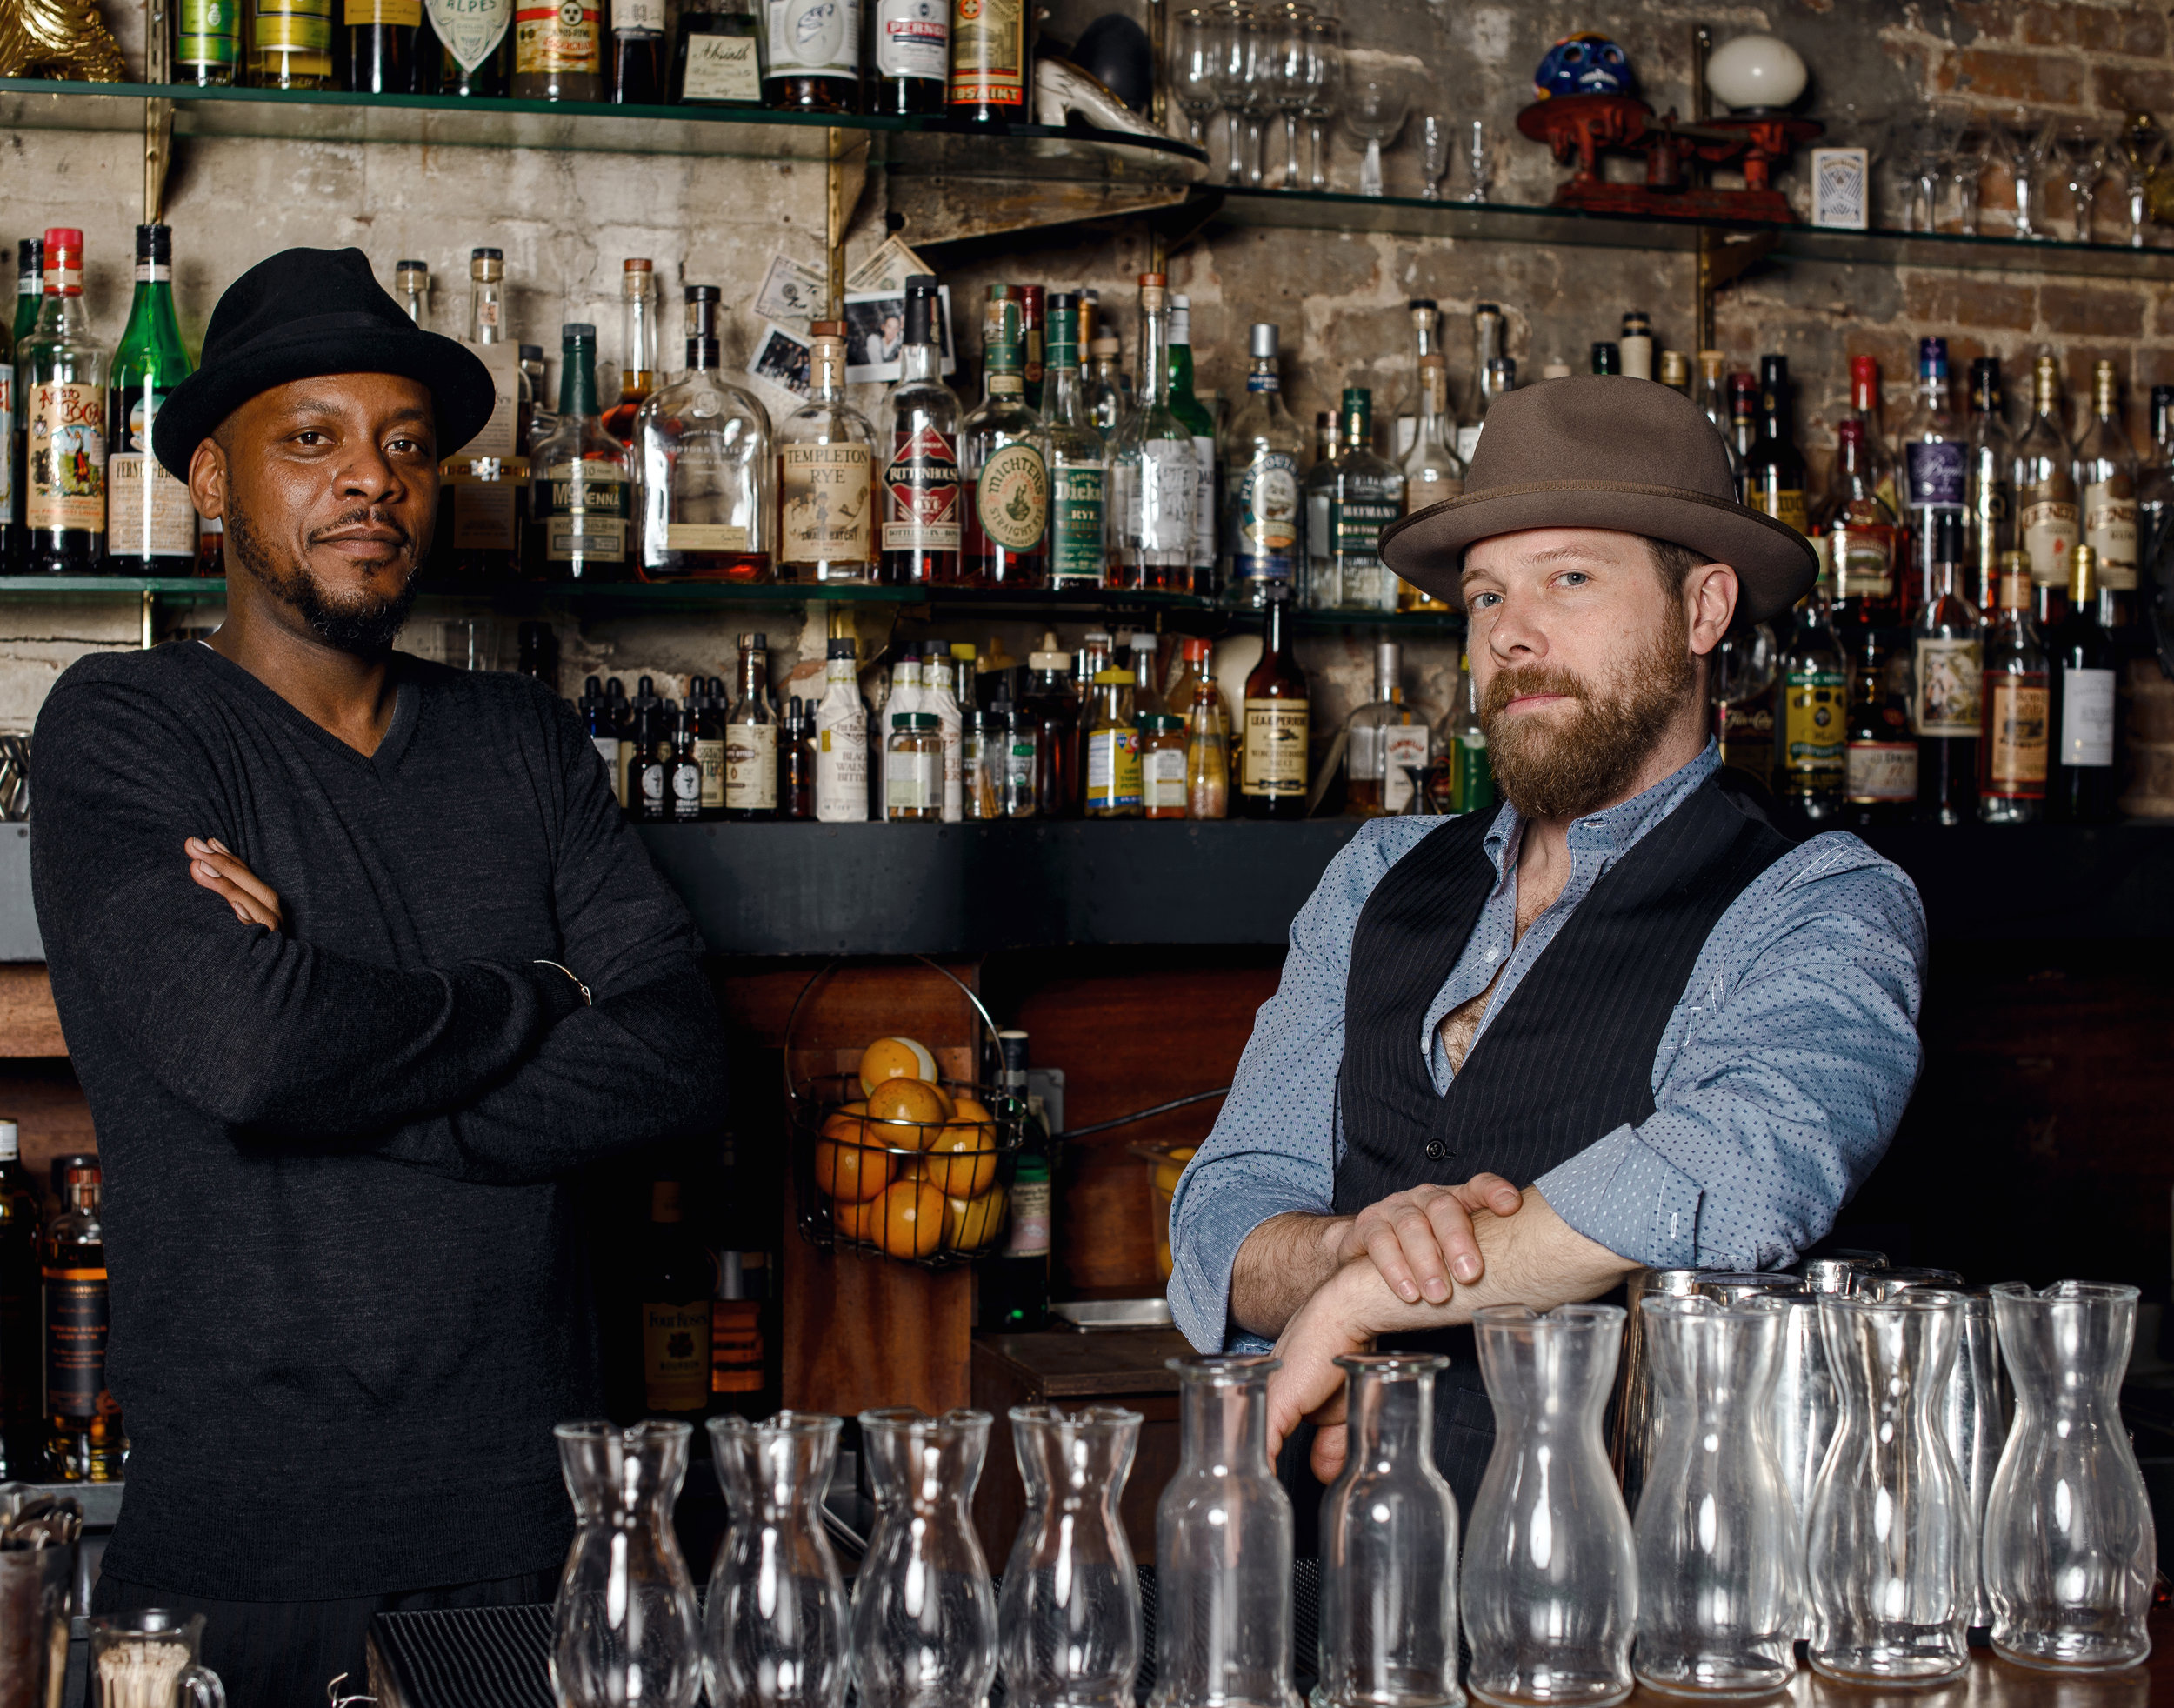 James and Johnny / Owners of Featherweight bar + Sally Roots restaurant